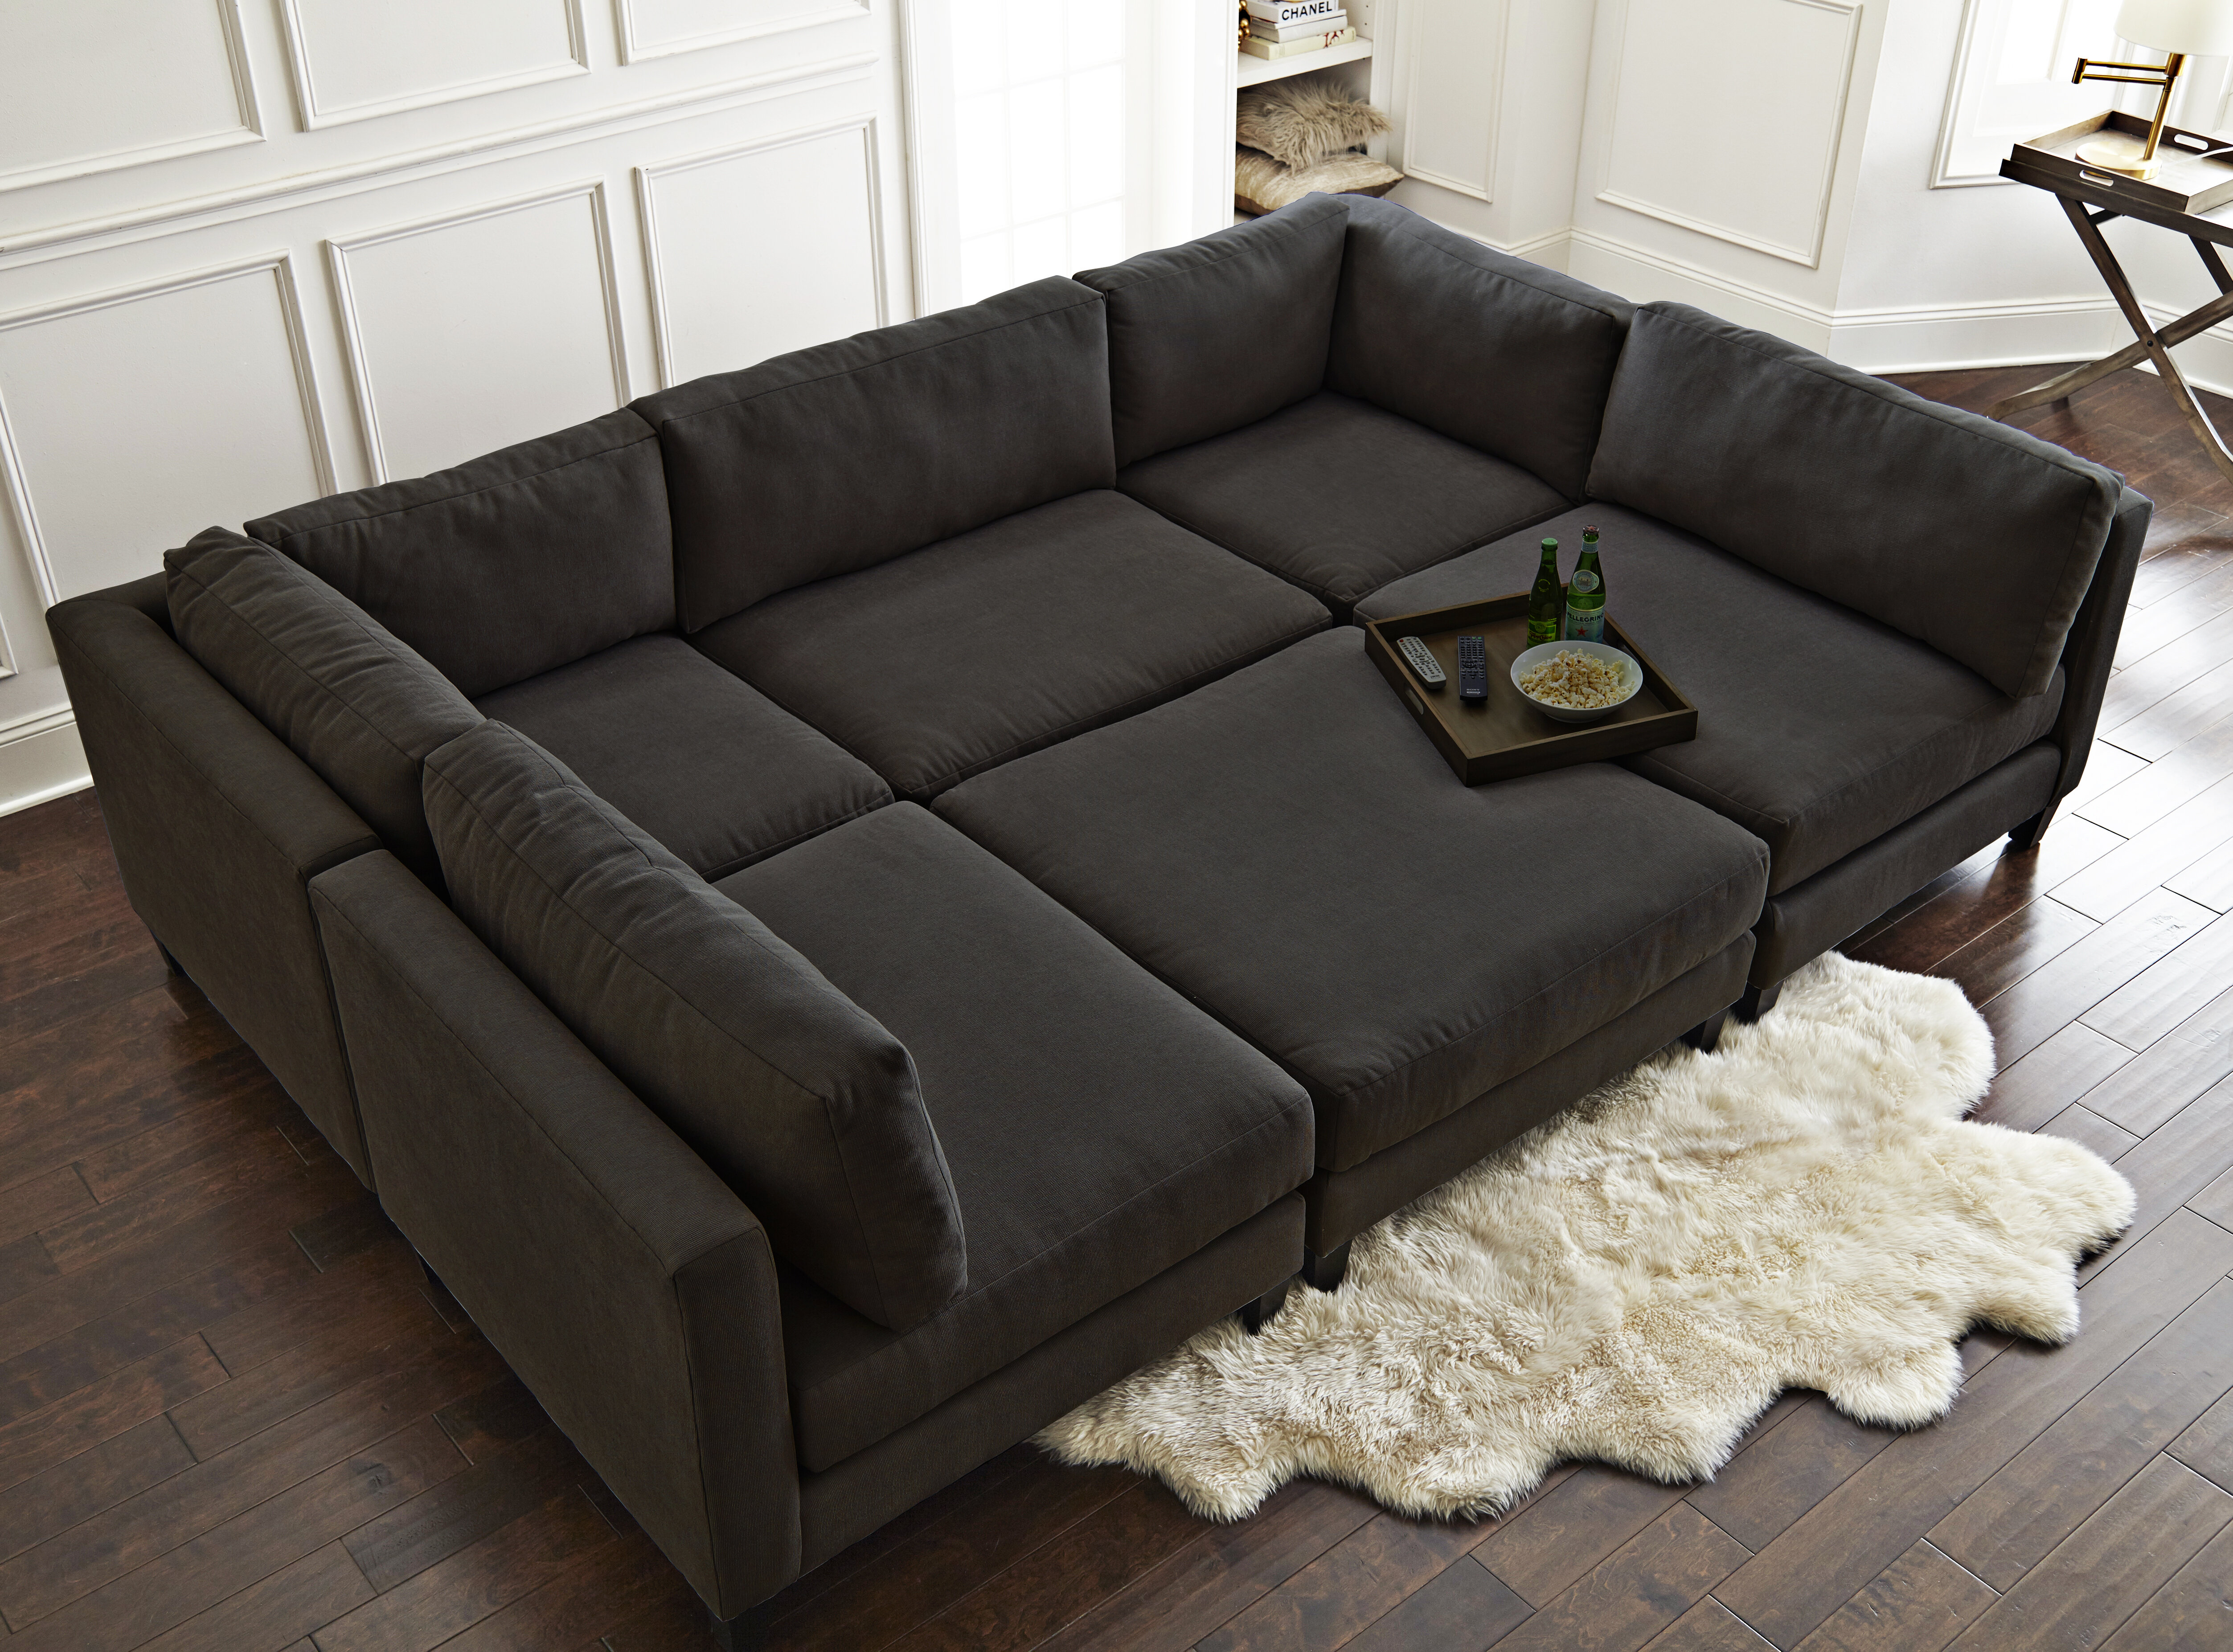 Picture of: Home By Sean Catherine Lowe Chelsea 120 Symmetrical U Shaped Component Sectional Reviews